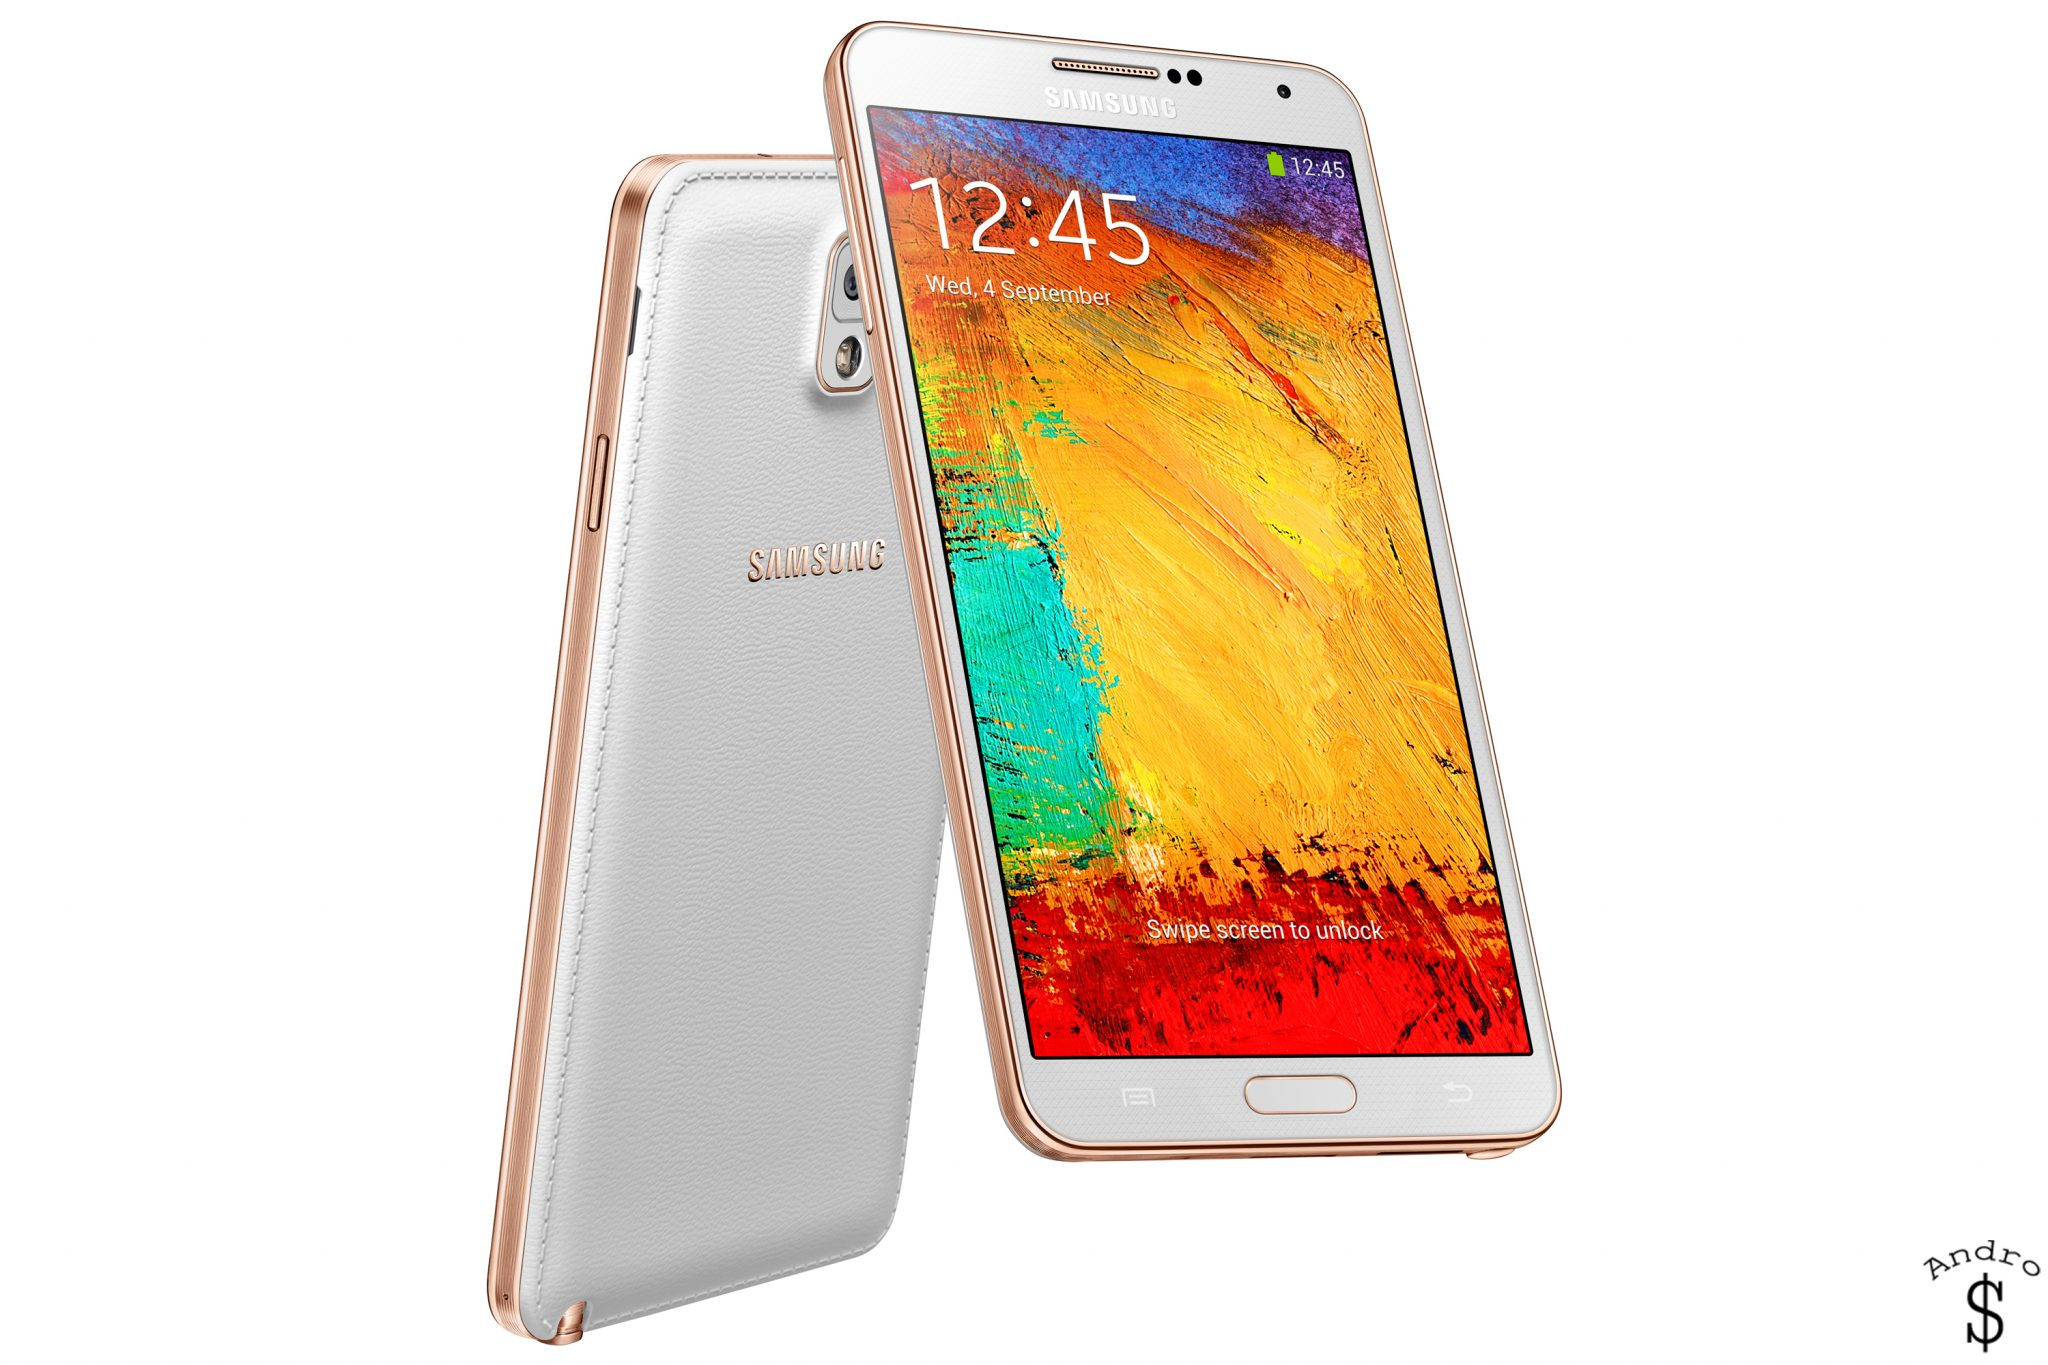 Note 3 31 - UPDATED : Samsung Galaxy Note 3 to come in more color options in January